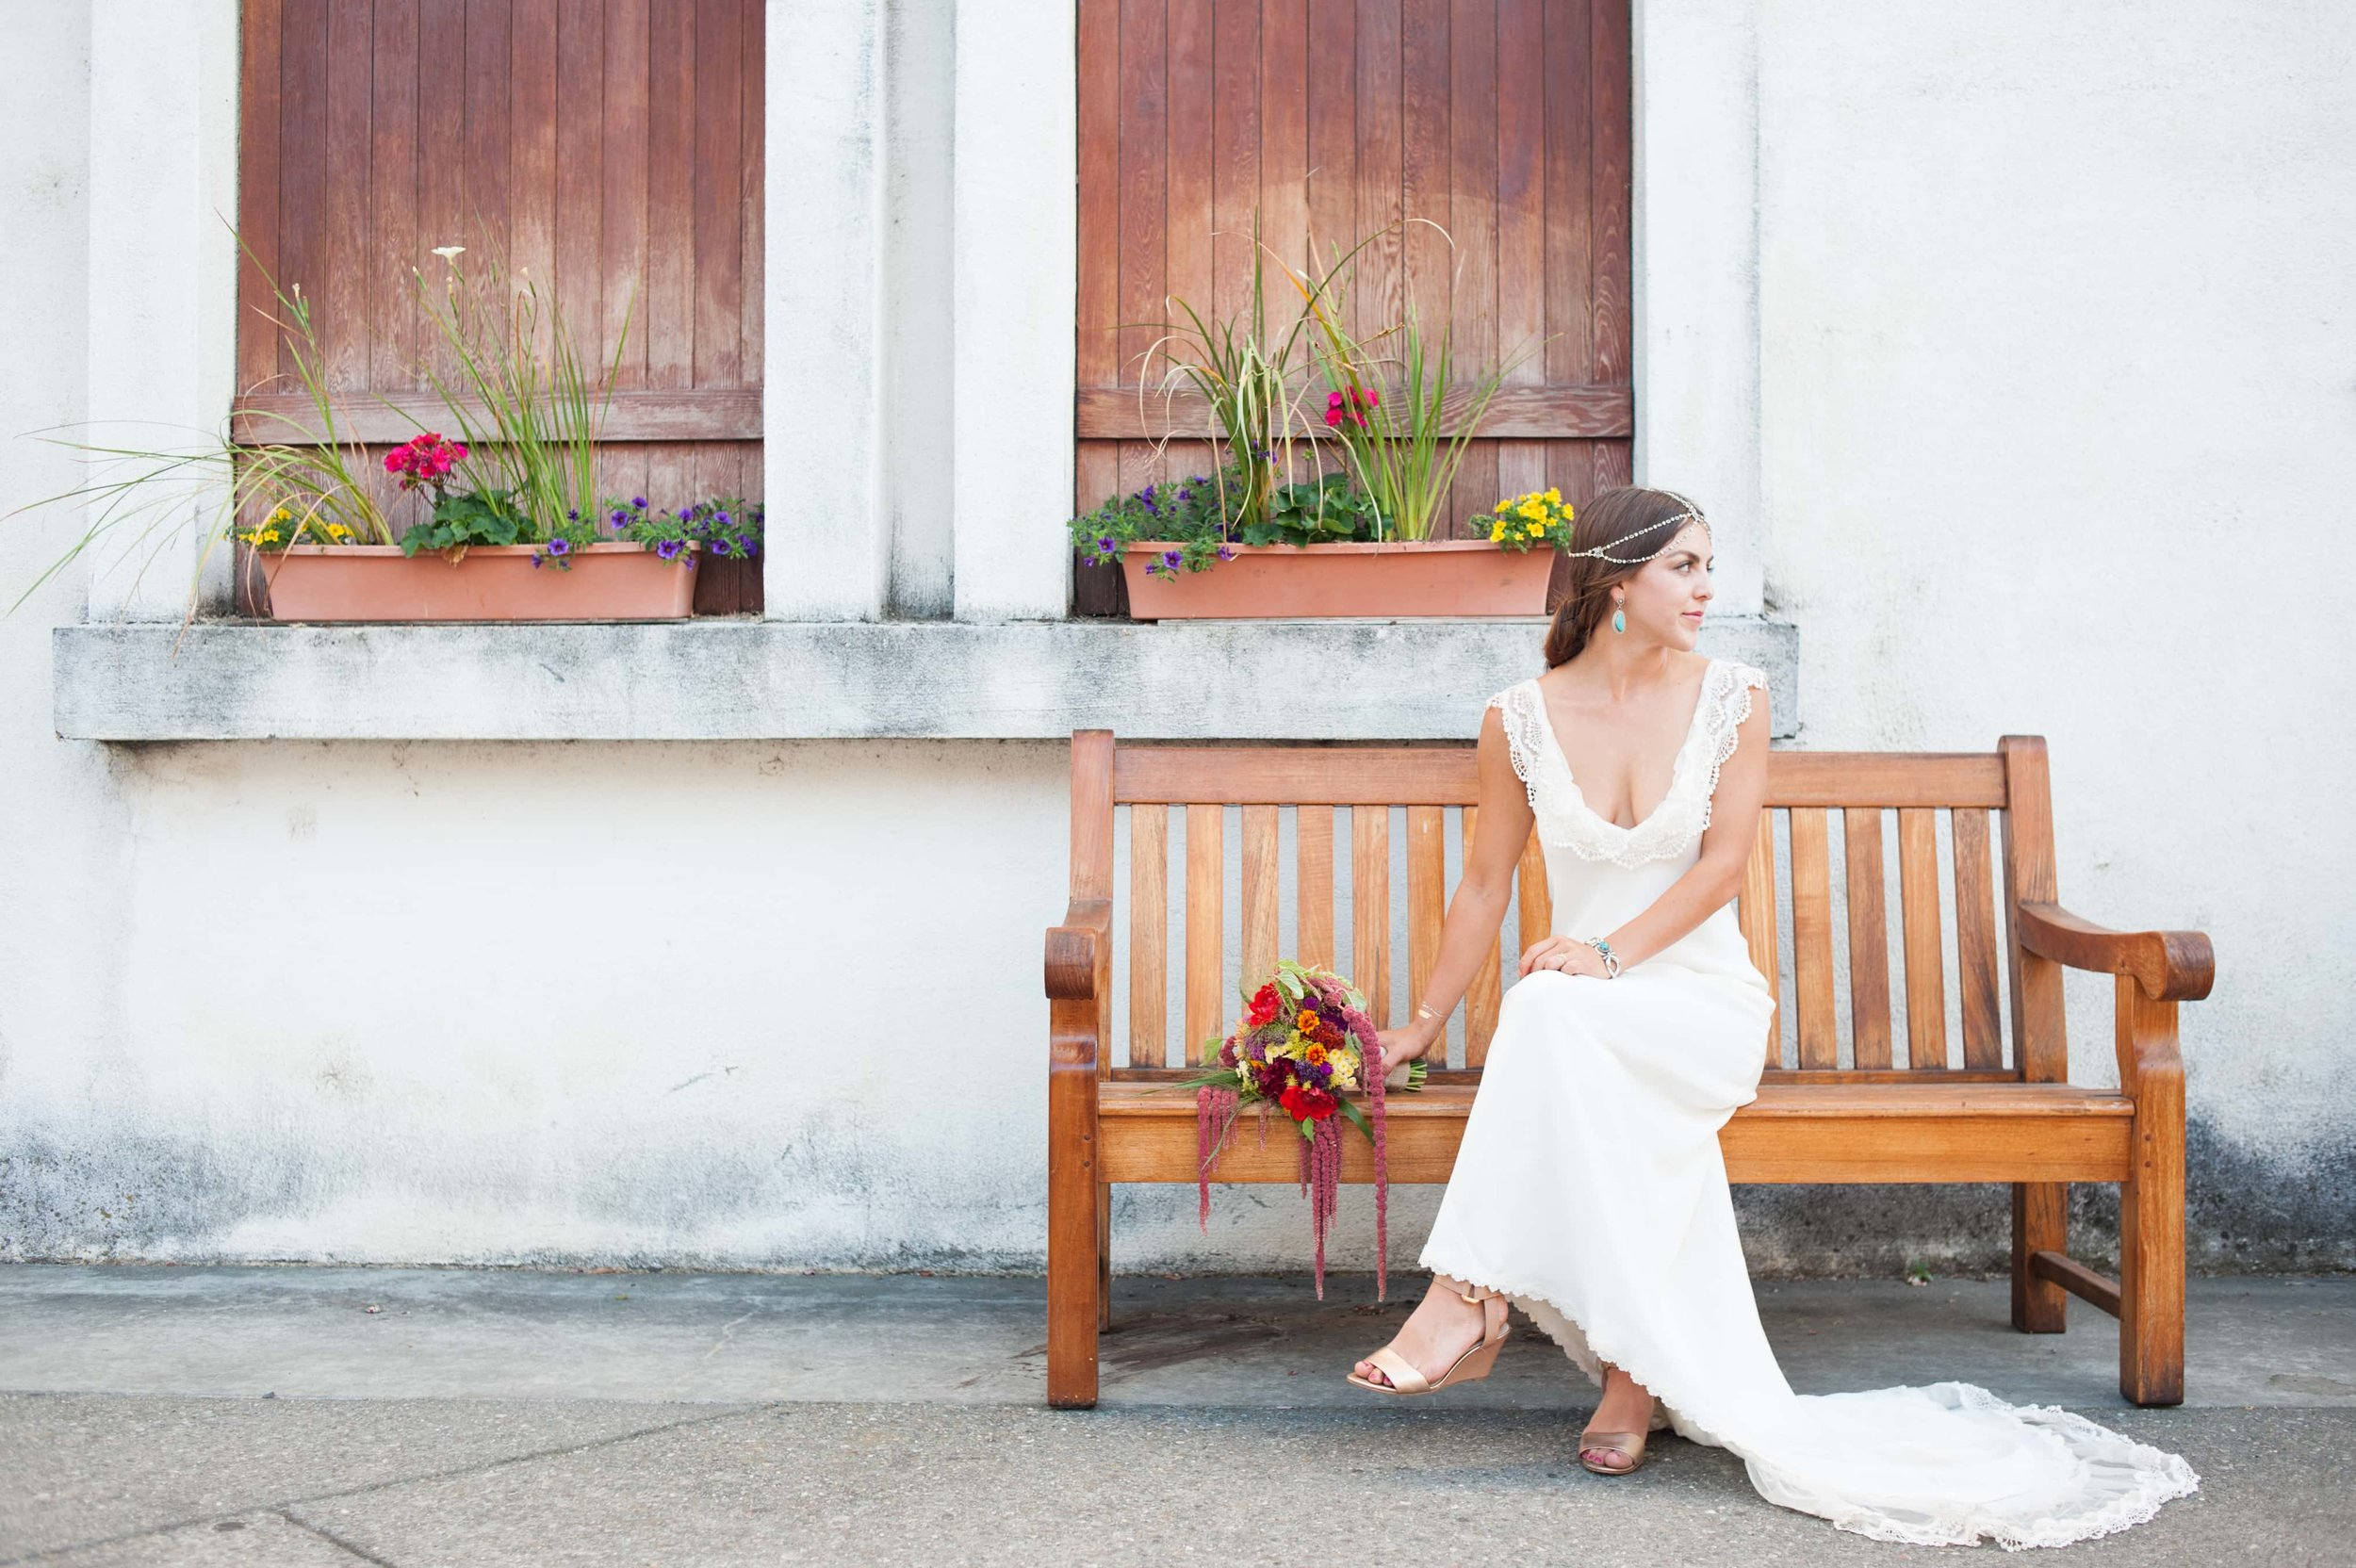 Portrait of bride siting on bench alone